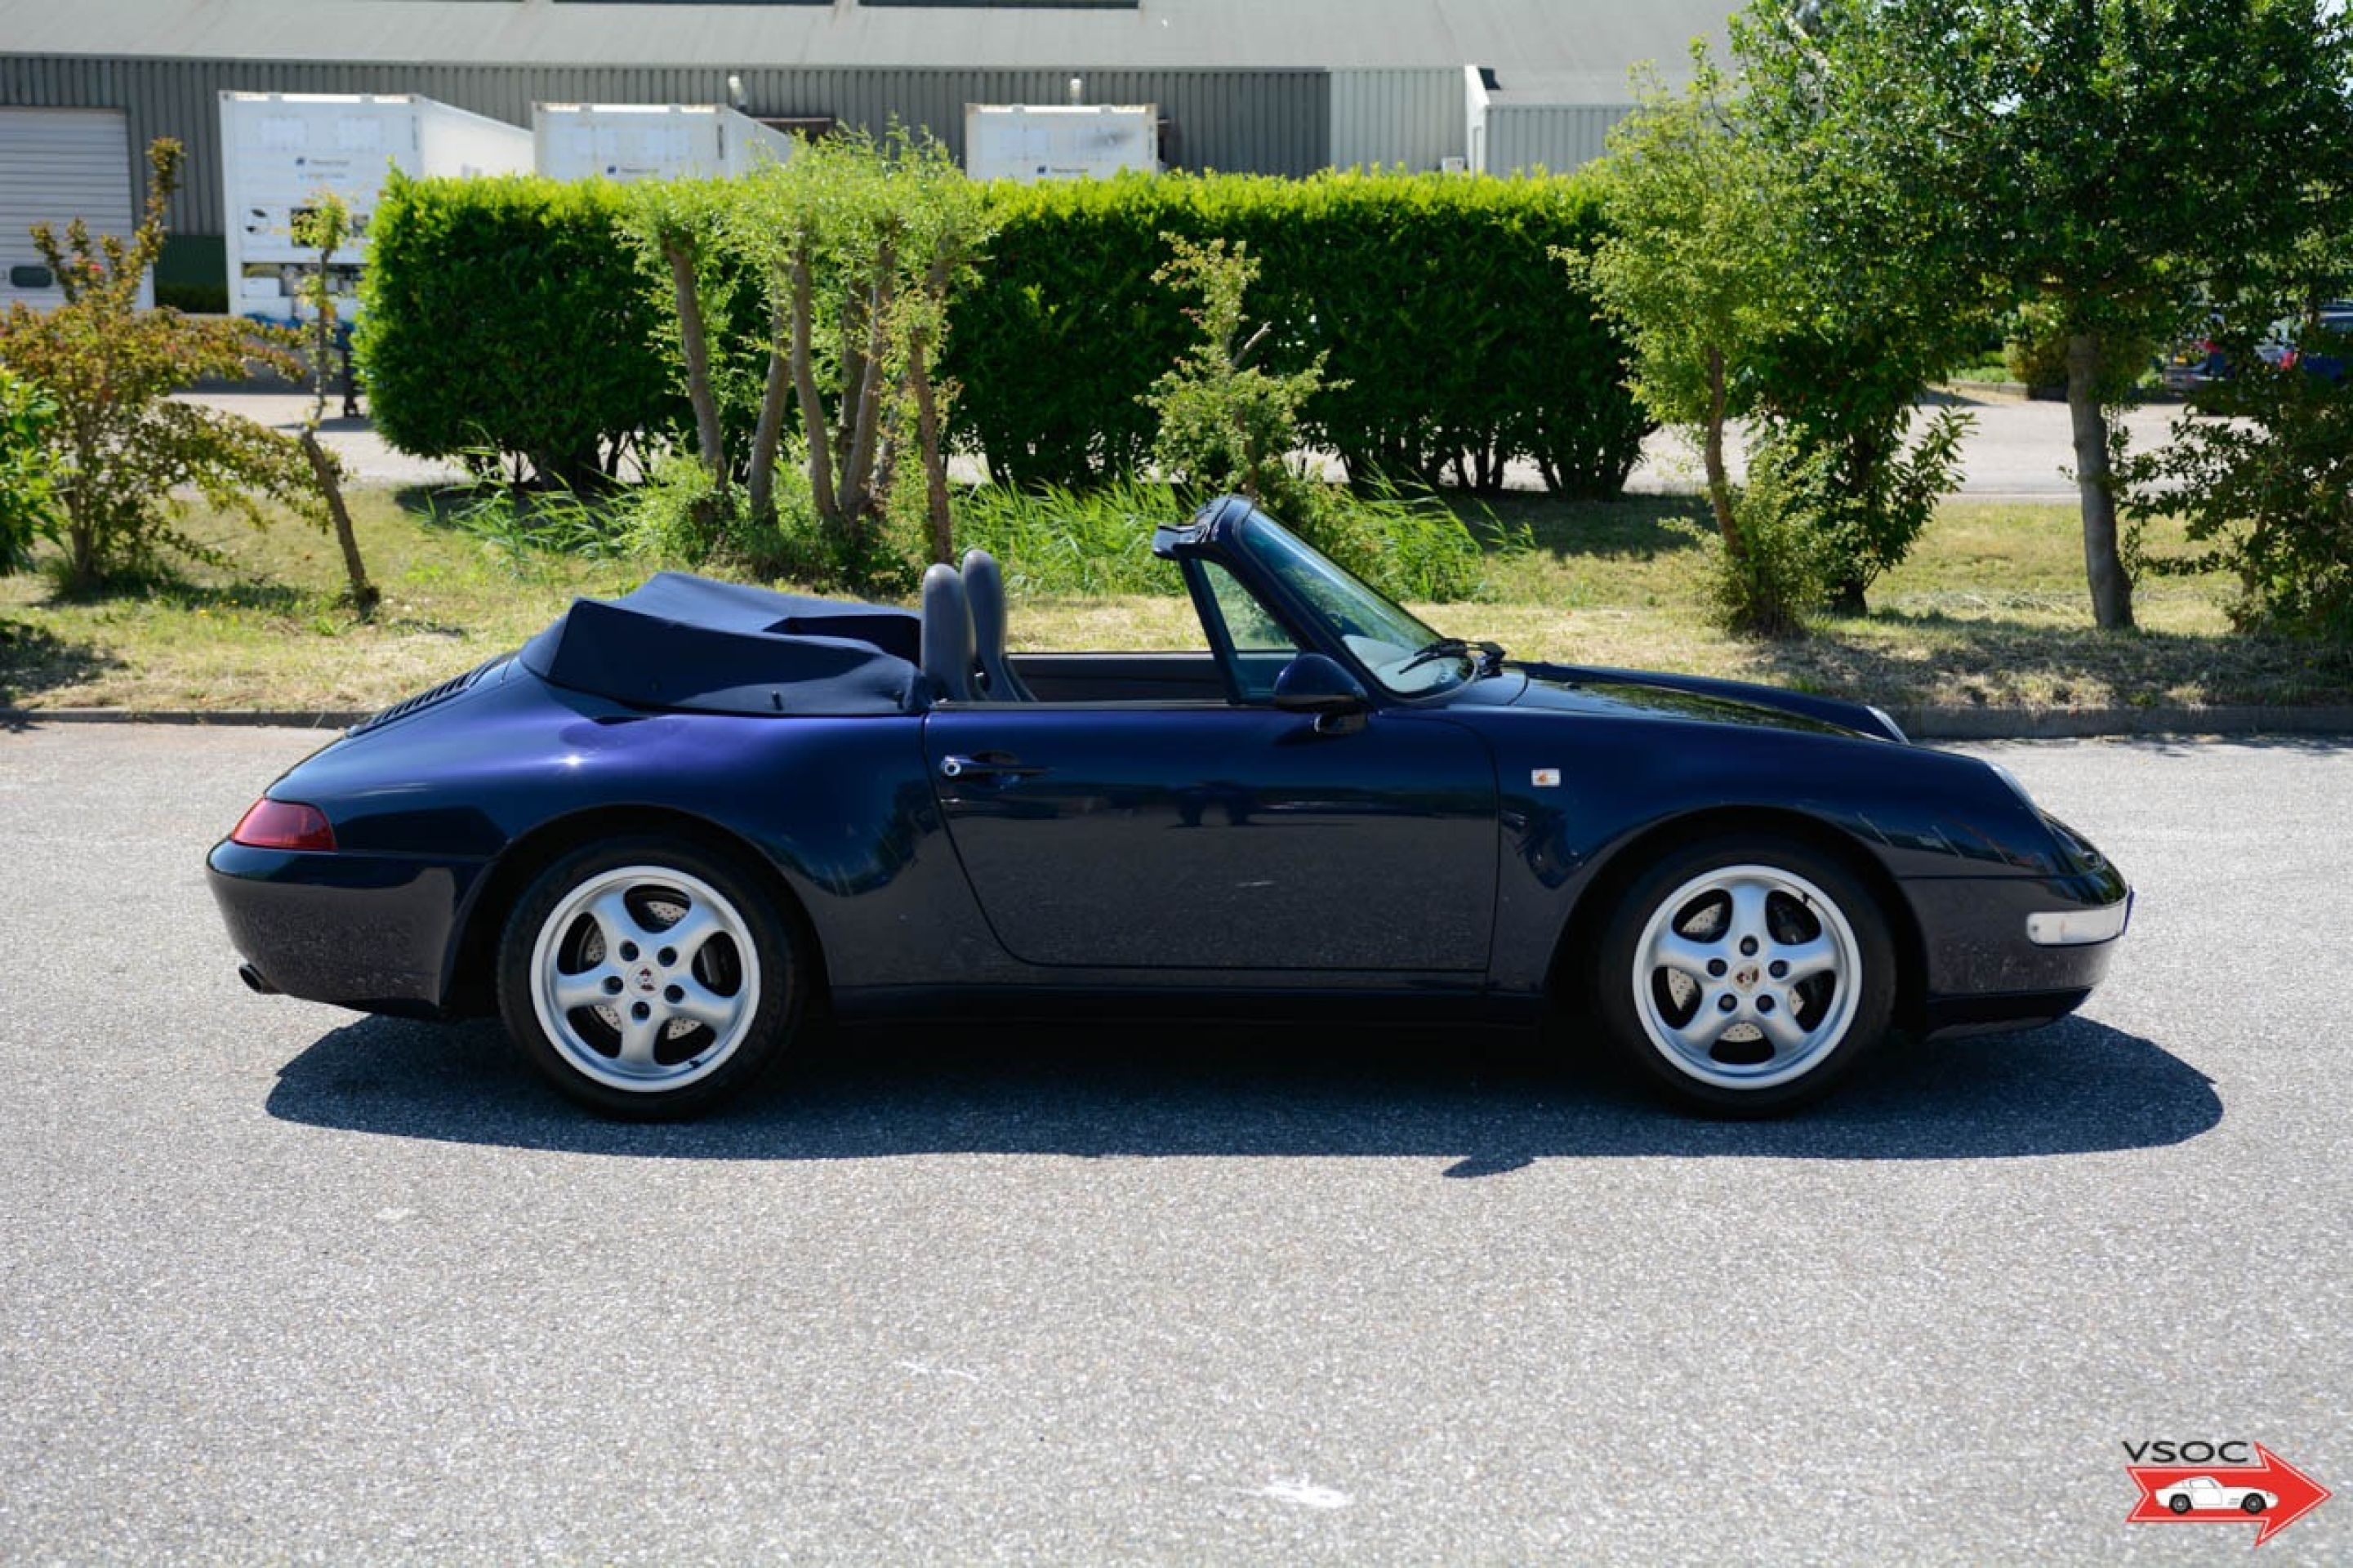 Porsche 993 Carrera 2 Cabriolet Night Blue Very nice low mileage example 94k km